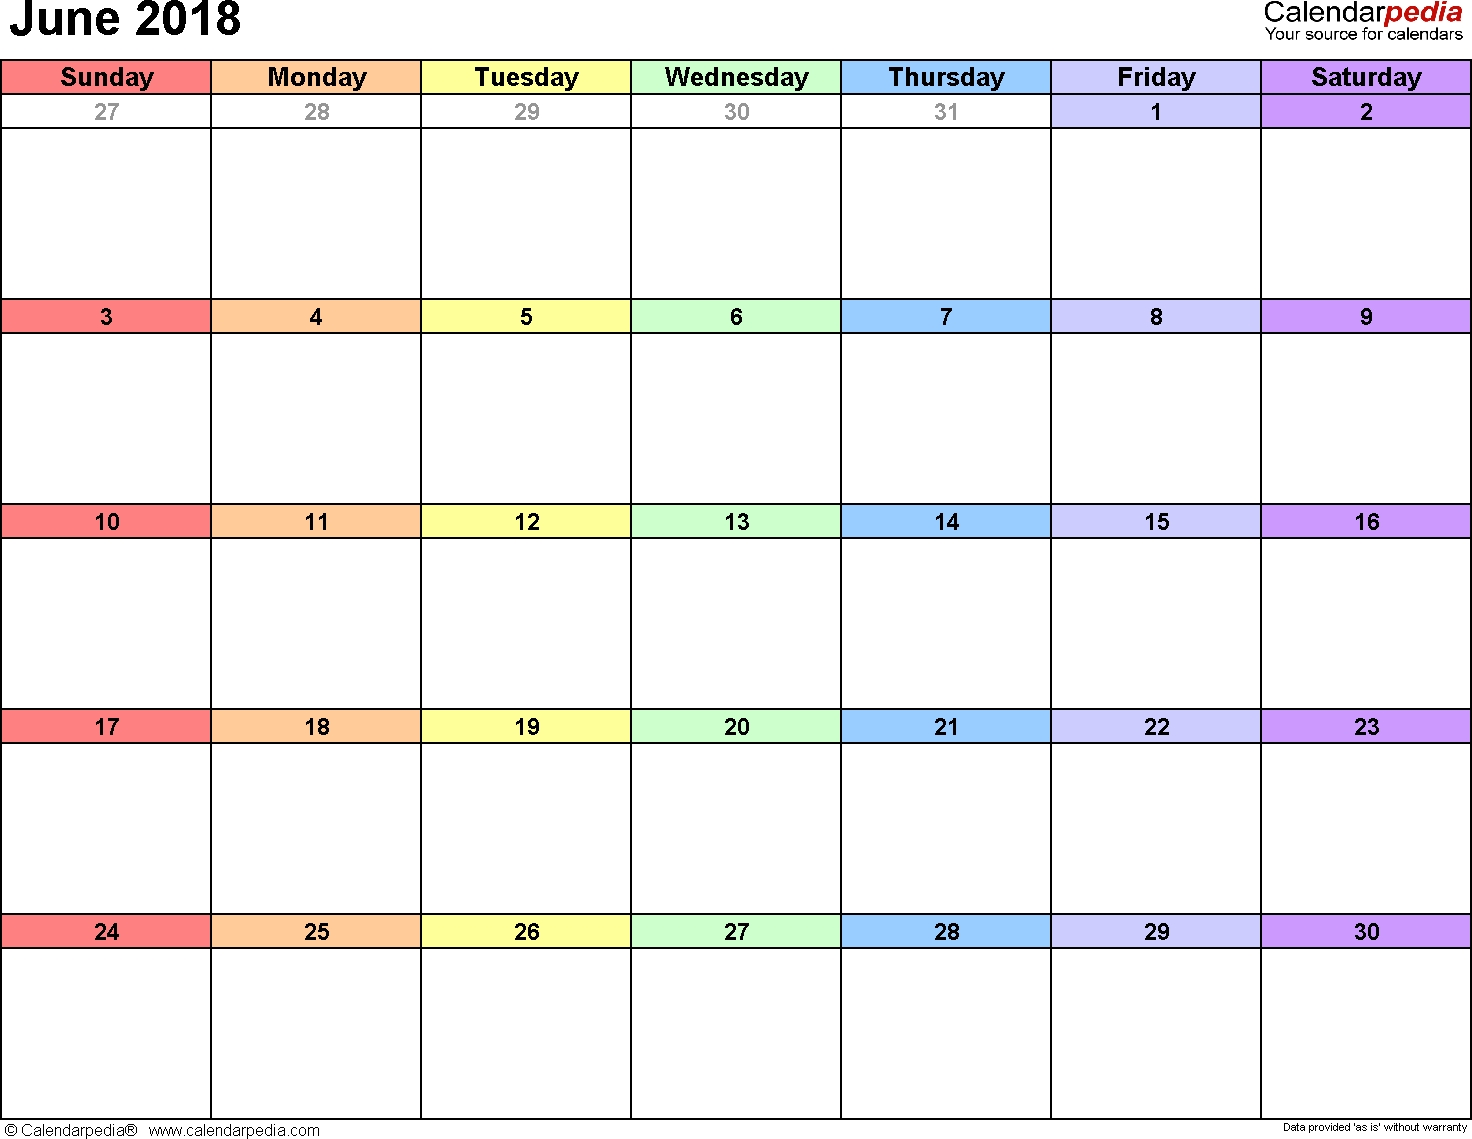 June 2018 Calendars For Word, Excel & Pdf pertaining to Empty Appointment Calendar One Month